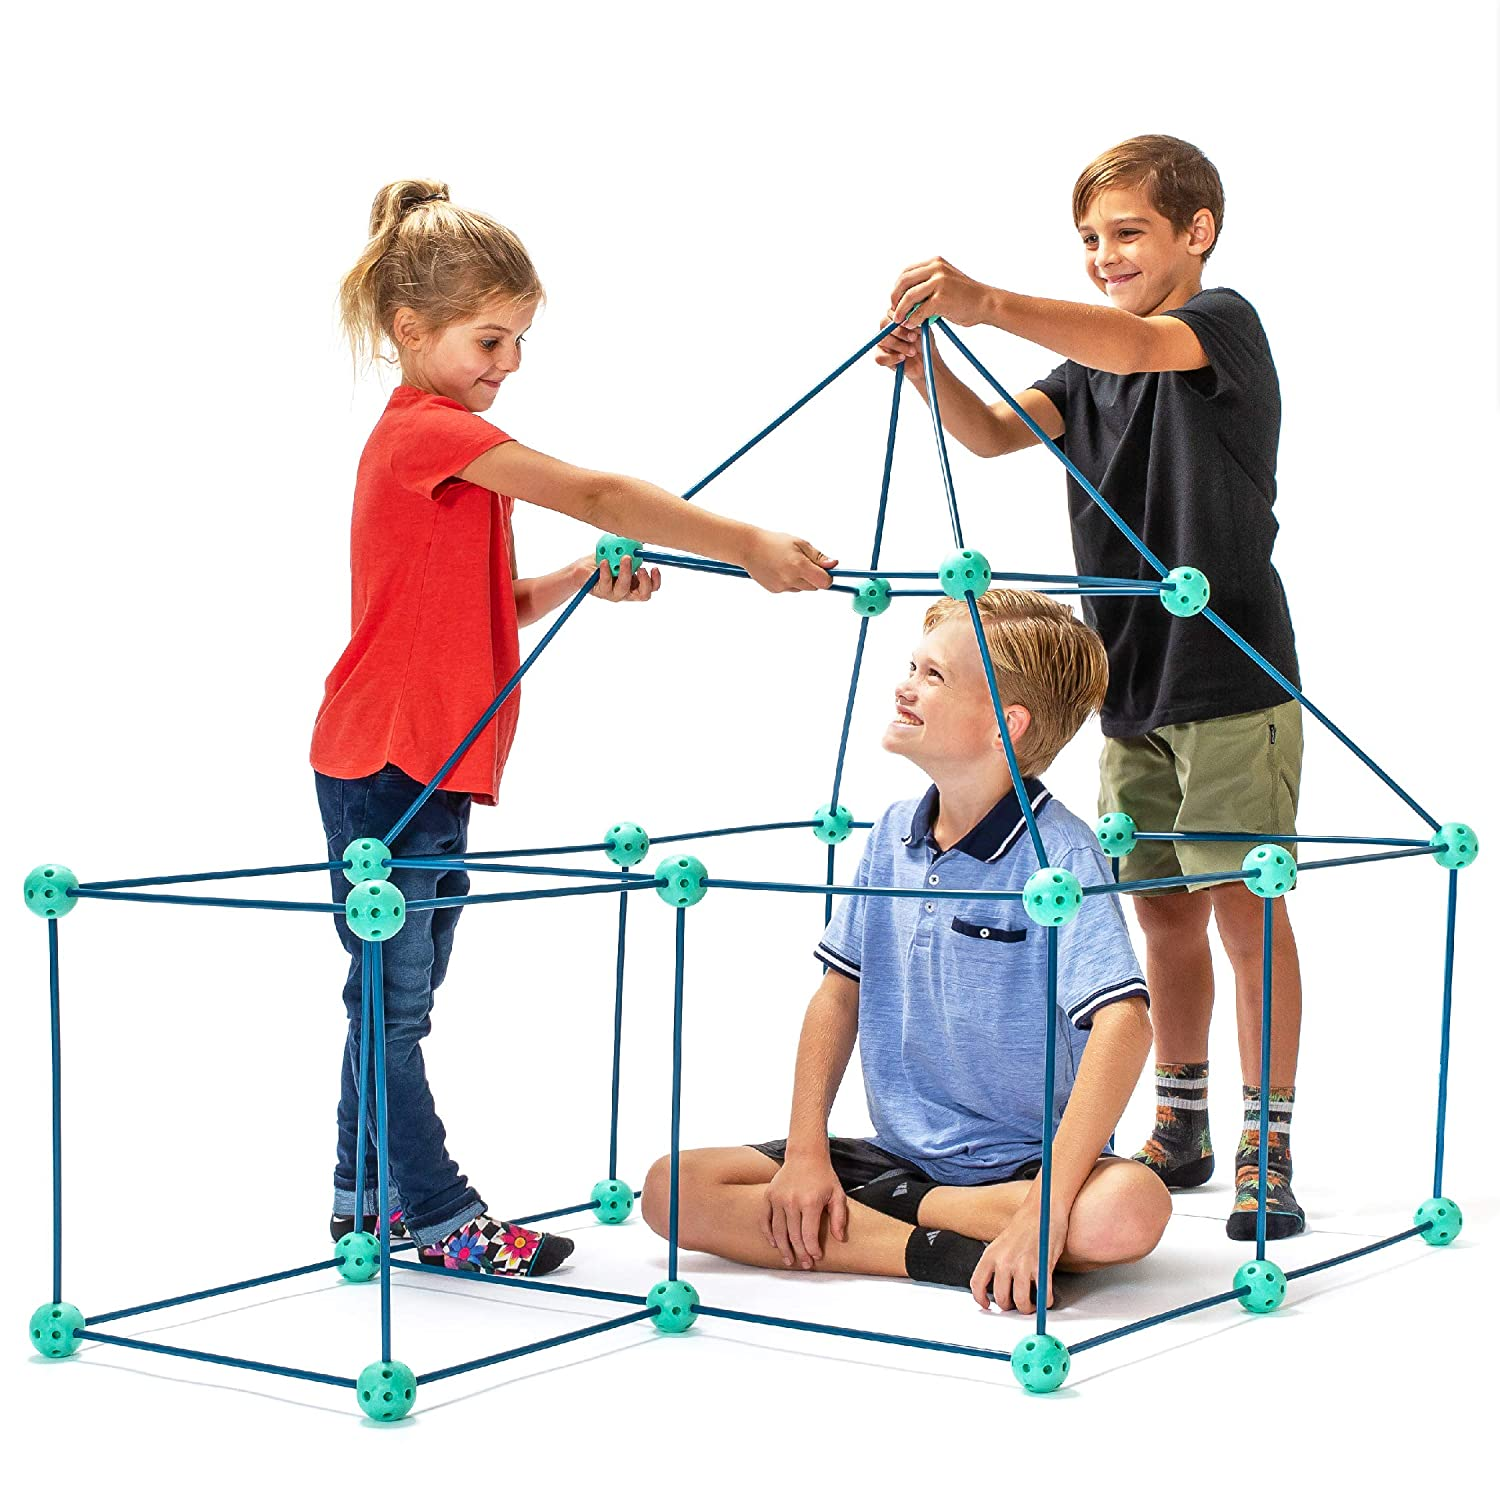 Fort Building Kits for Kids - Fun Forts STEM Building Toys, Play Tent Fort Kit with 81 Pcs